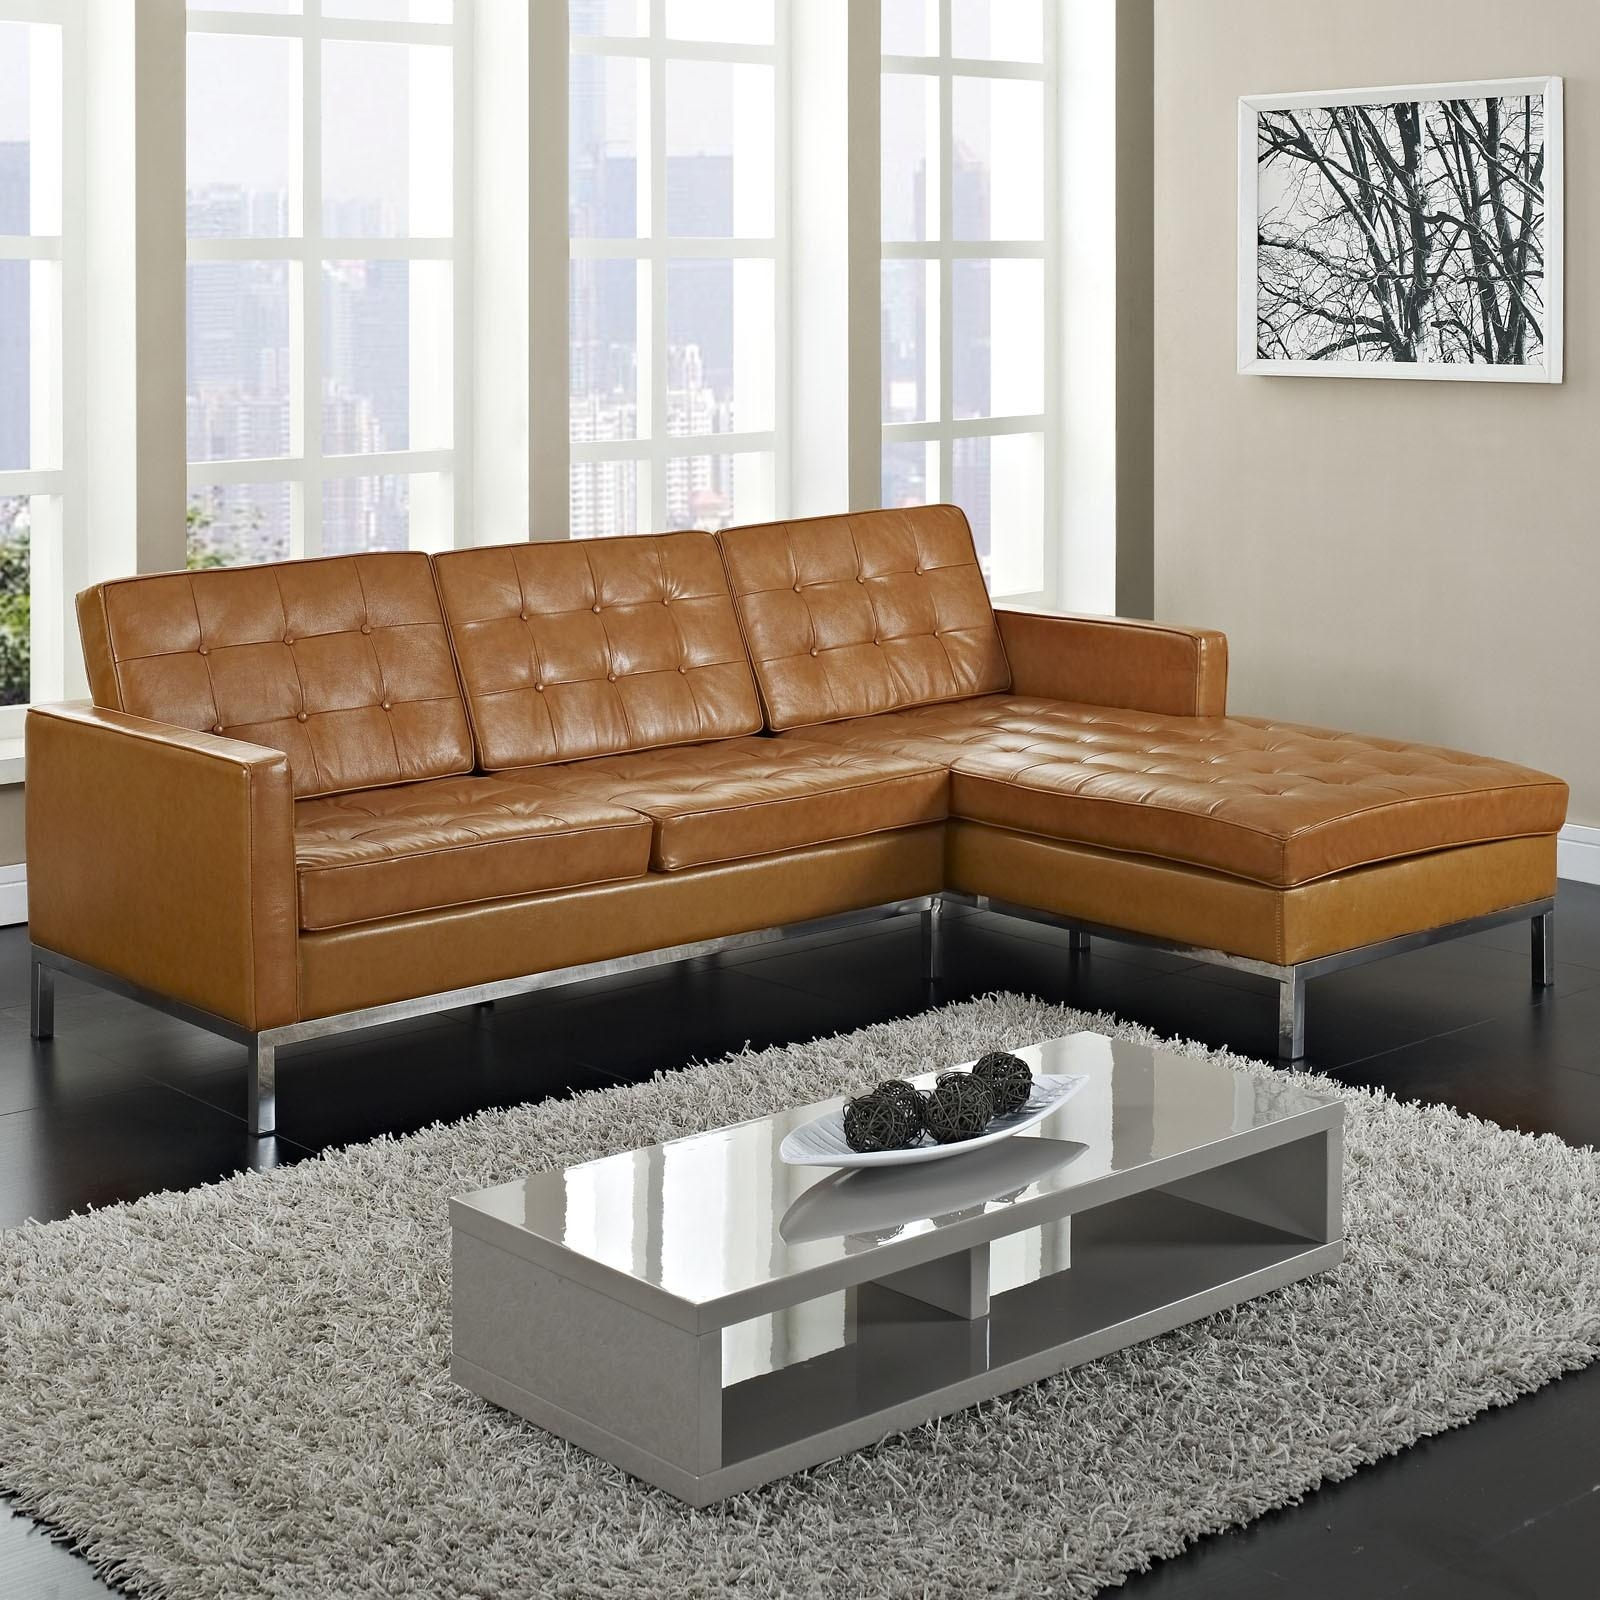 Sofas Center : Breathtaking Sectional Sofa For Small Living Room For Small Microfiber Sectional (Image 17 of 20)